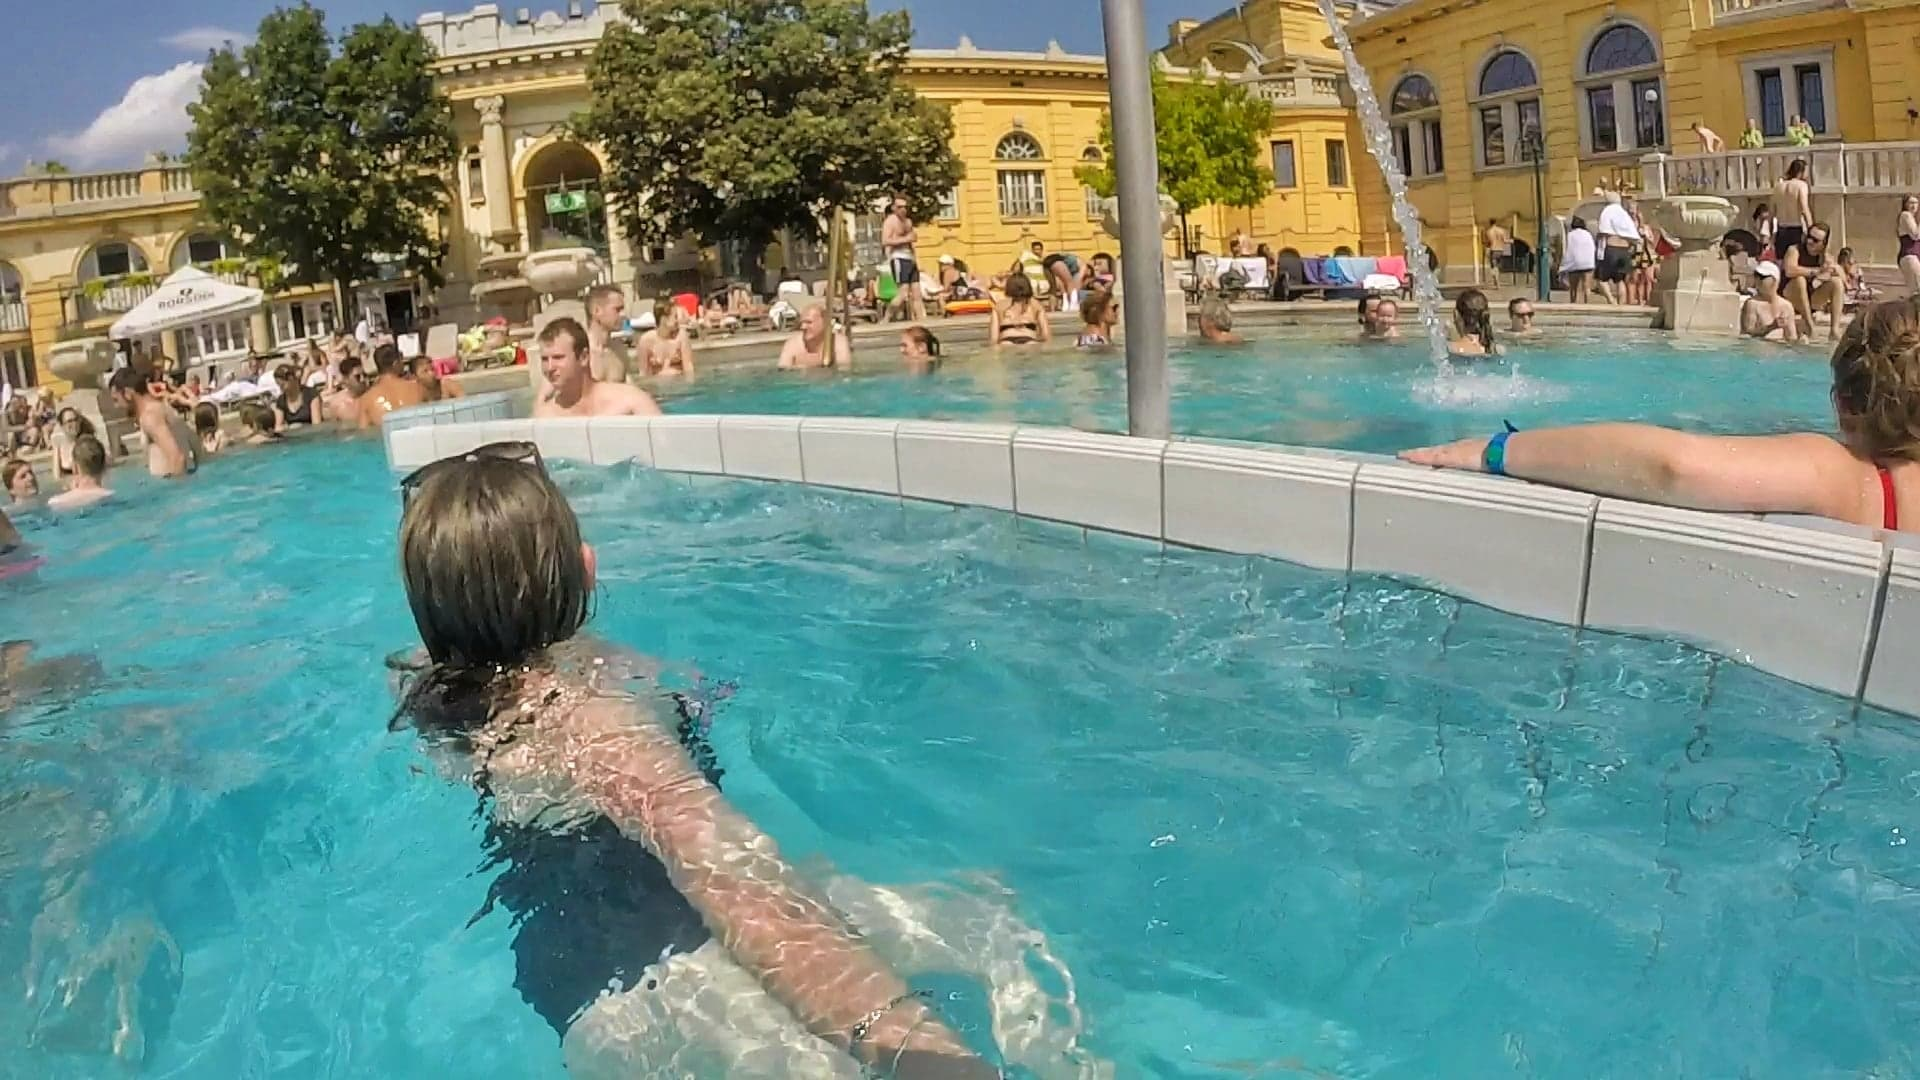 Chasing Emma in the whirlpool in the second semicircular outdoor bath at Szechenyi